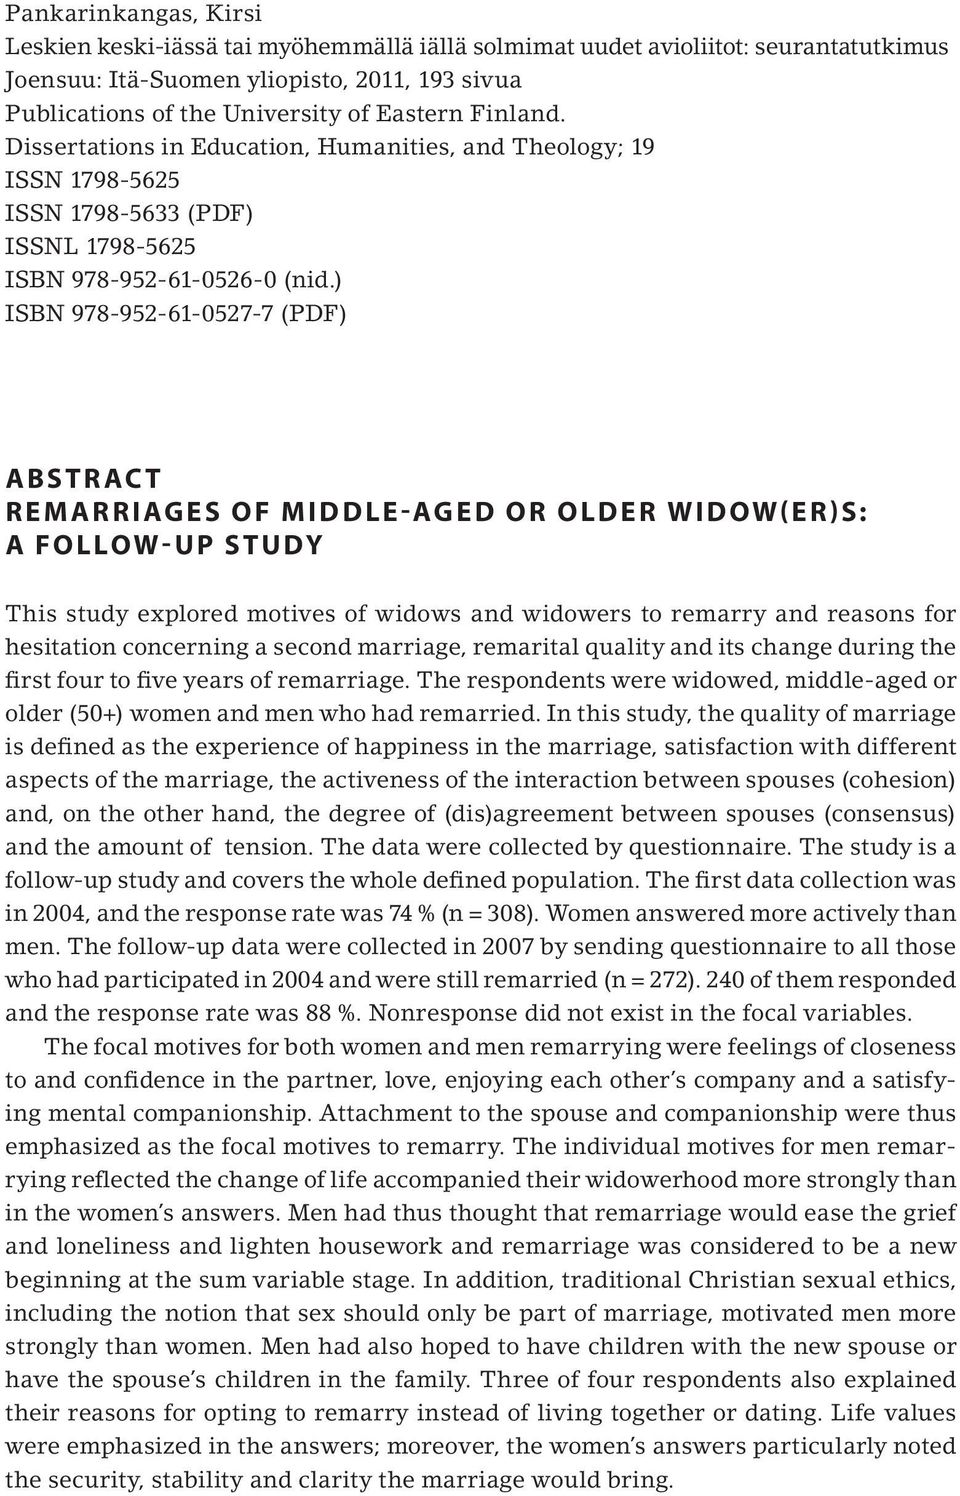 ) ISBN 978-952-61-0527-7 (PDF) Abstract REMARRIAGES OF MIDDLE-AGED OR OLDER WIDOW(ER)S: A FOLLOW-UP STUDY This study explored motives of widows and widowers to remarry and reasons for hesitation